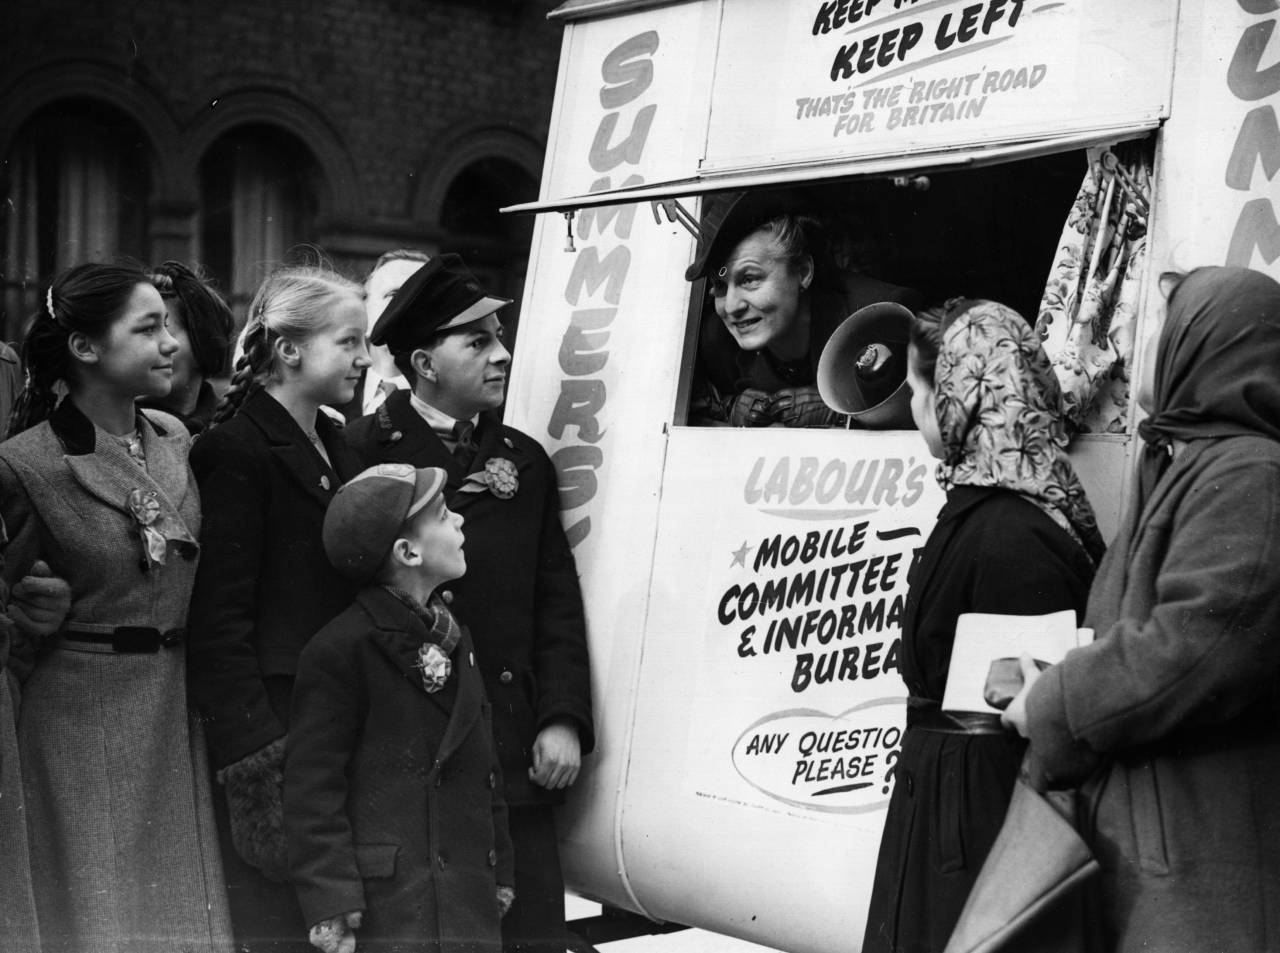 Dr Edith Summerskill (1901 - 1980) the English doctor and politician is pictured at West Fulham, conducting her electioneering campaign from a caravan. (Photo by Keystone/Getty Images)